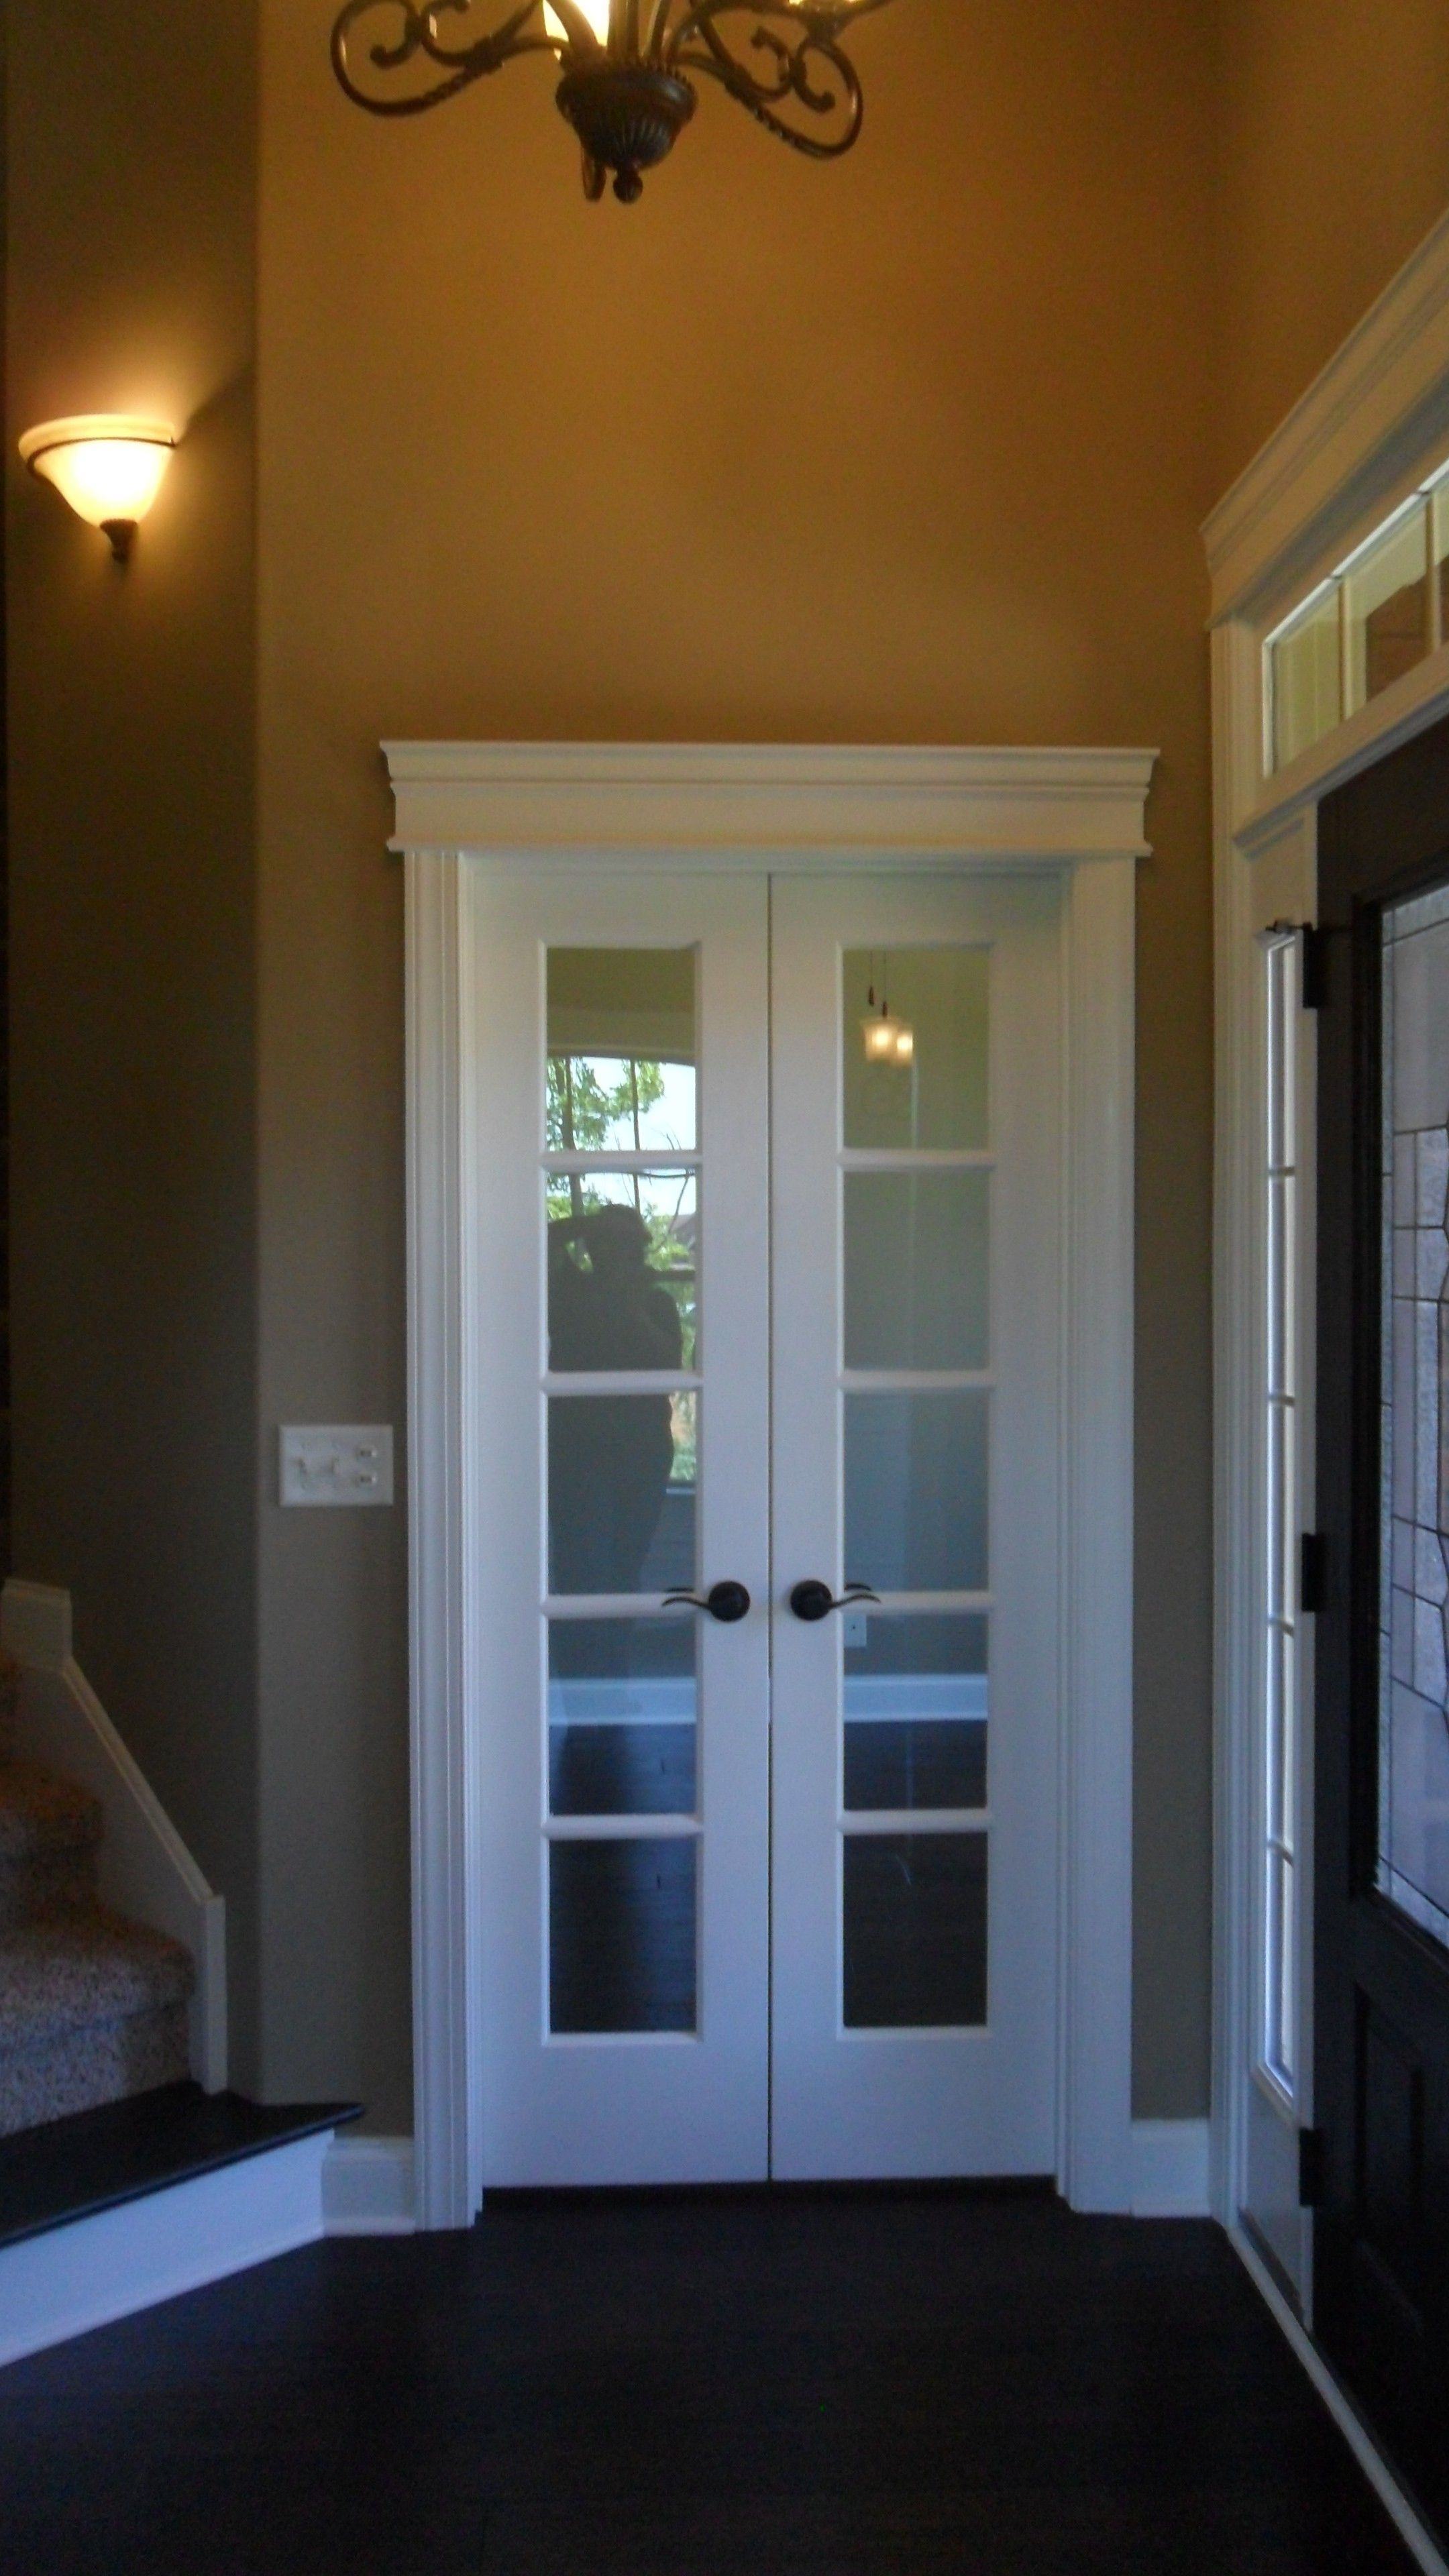 Interior French Doors To Patio Conversion | RENIu0027s Decor Love | Pinterest |  Interior French Doors, Patios And Doors